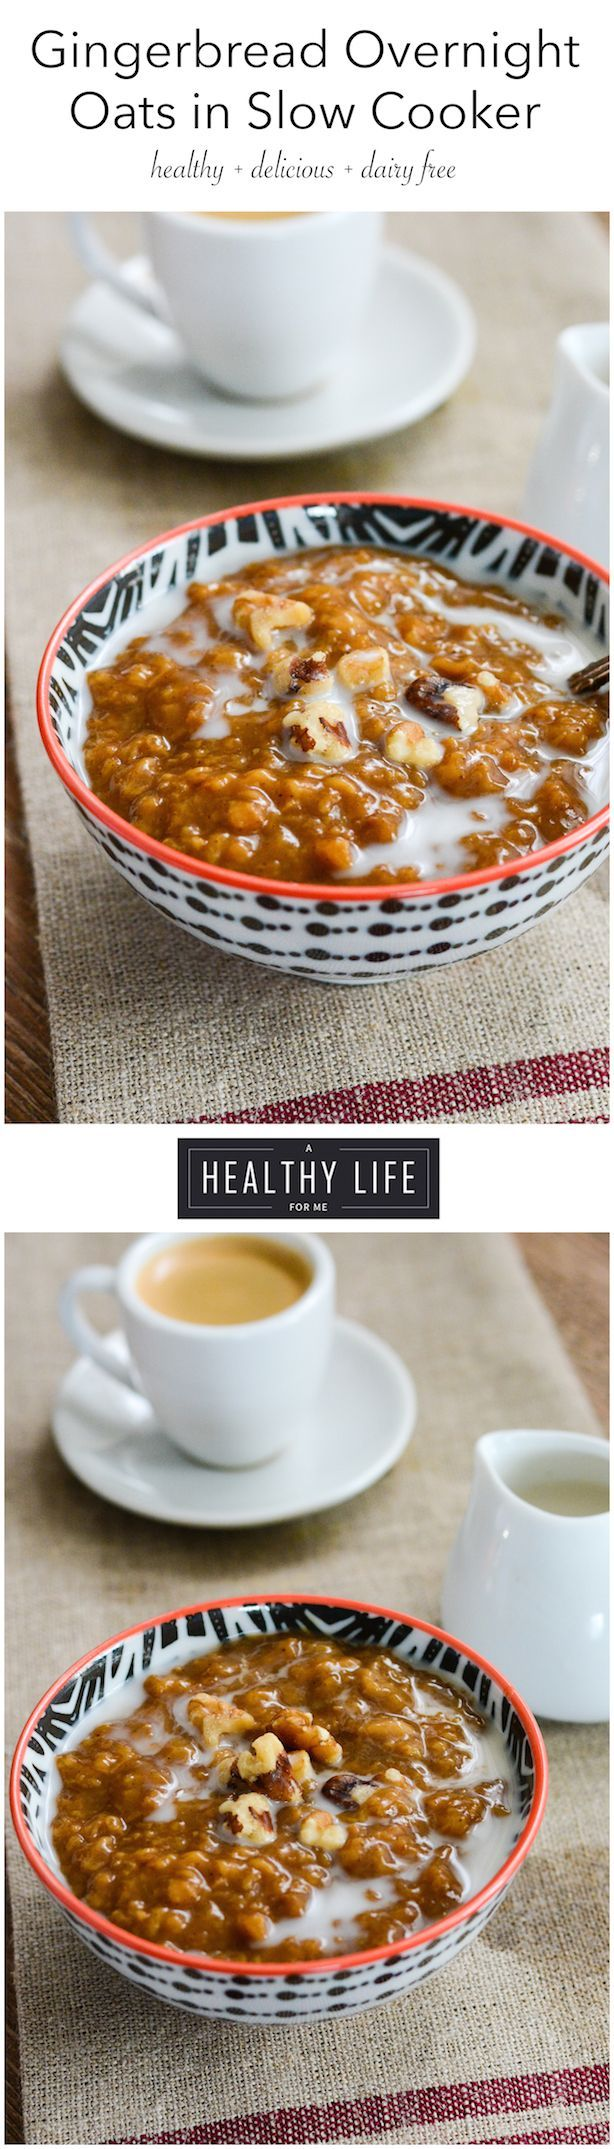 Gingerbread Overnight Oats are rich with molasses and falls warming spices.  Think old-fashioned gingerbread for your morning oatmeal that is gluten-free and is ready when you wake up.  Not to mention it makes your whole house smell amazing. - A Healthy Life For Me